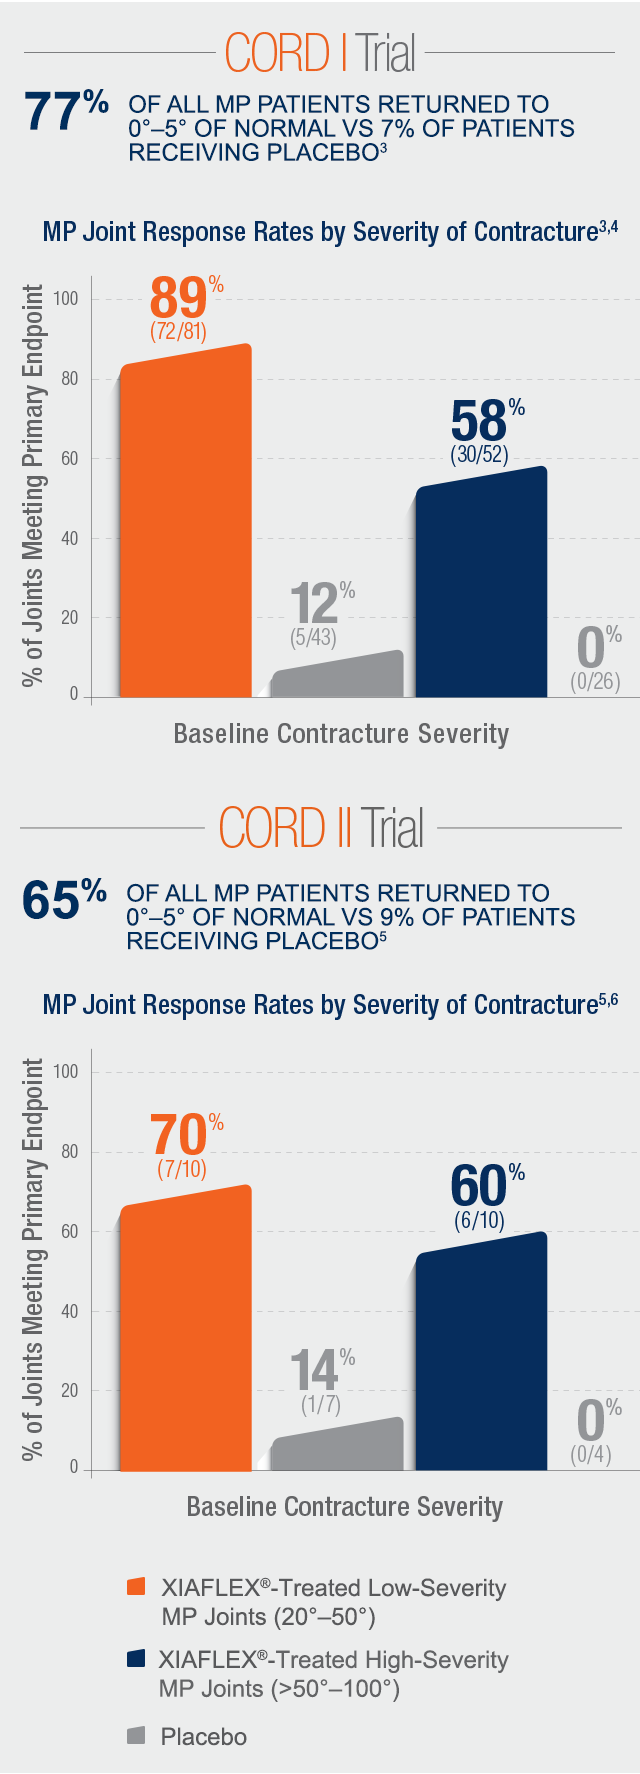 Chart of data on MP joint response rates by severity of contracture